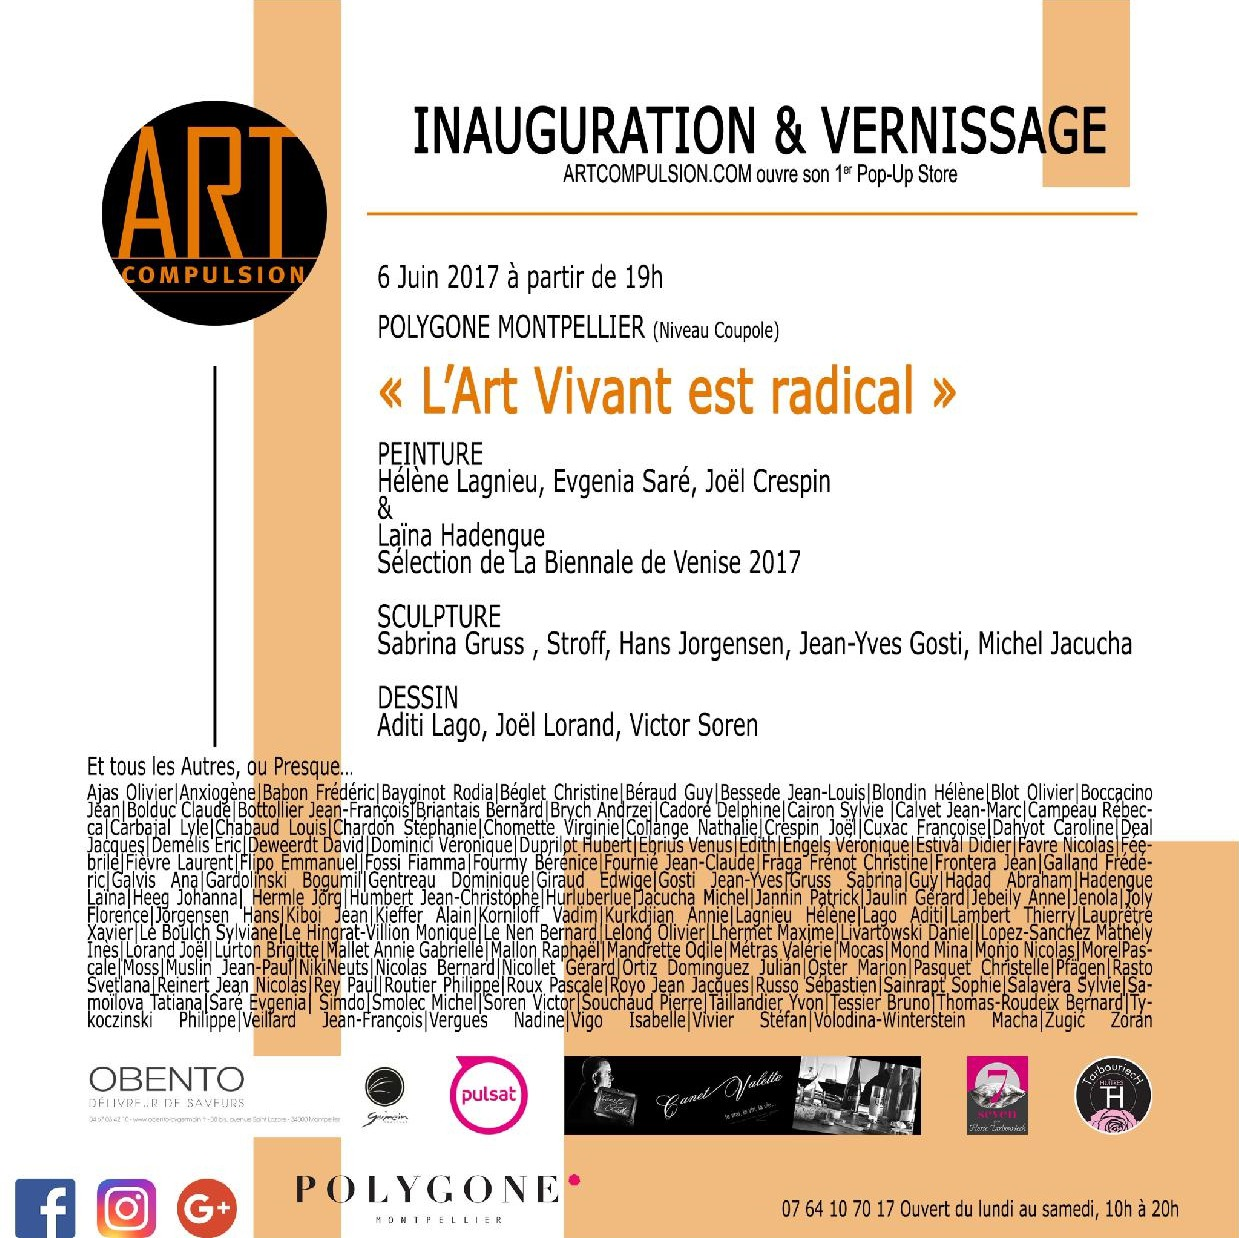 Inauguration et vernissage: Artcompulsion ouvre son 1er Pop-Up Store